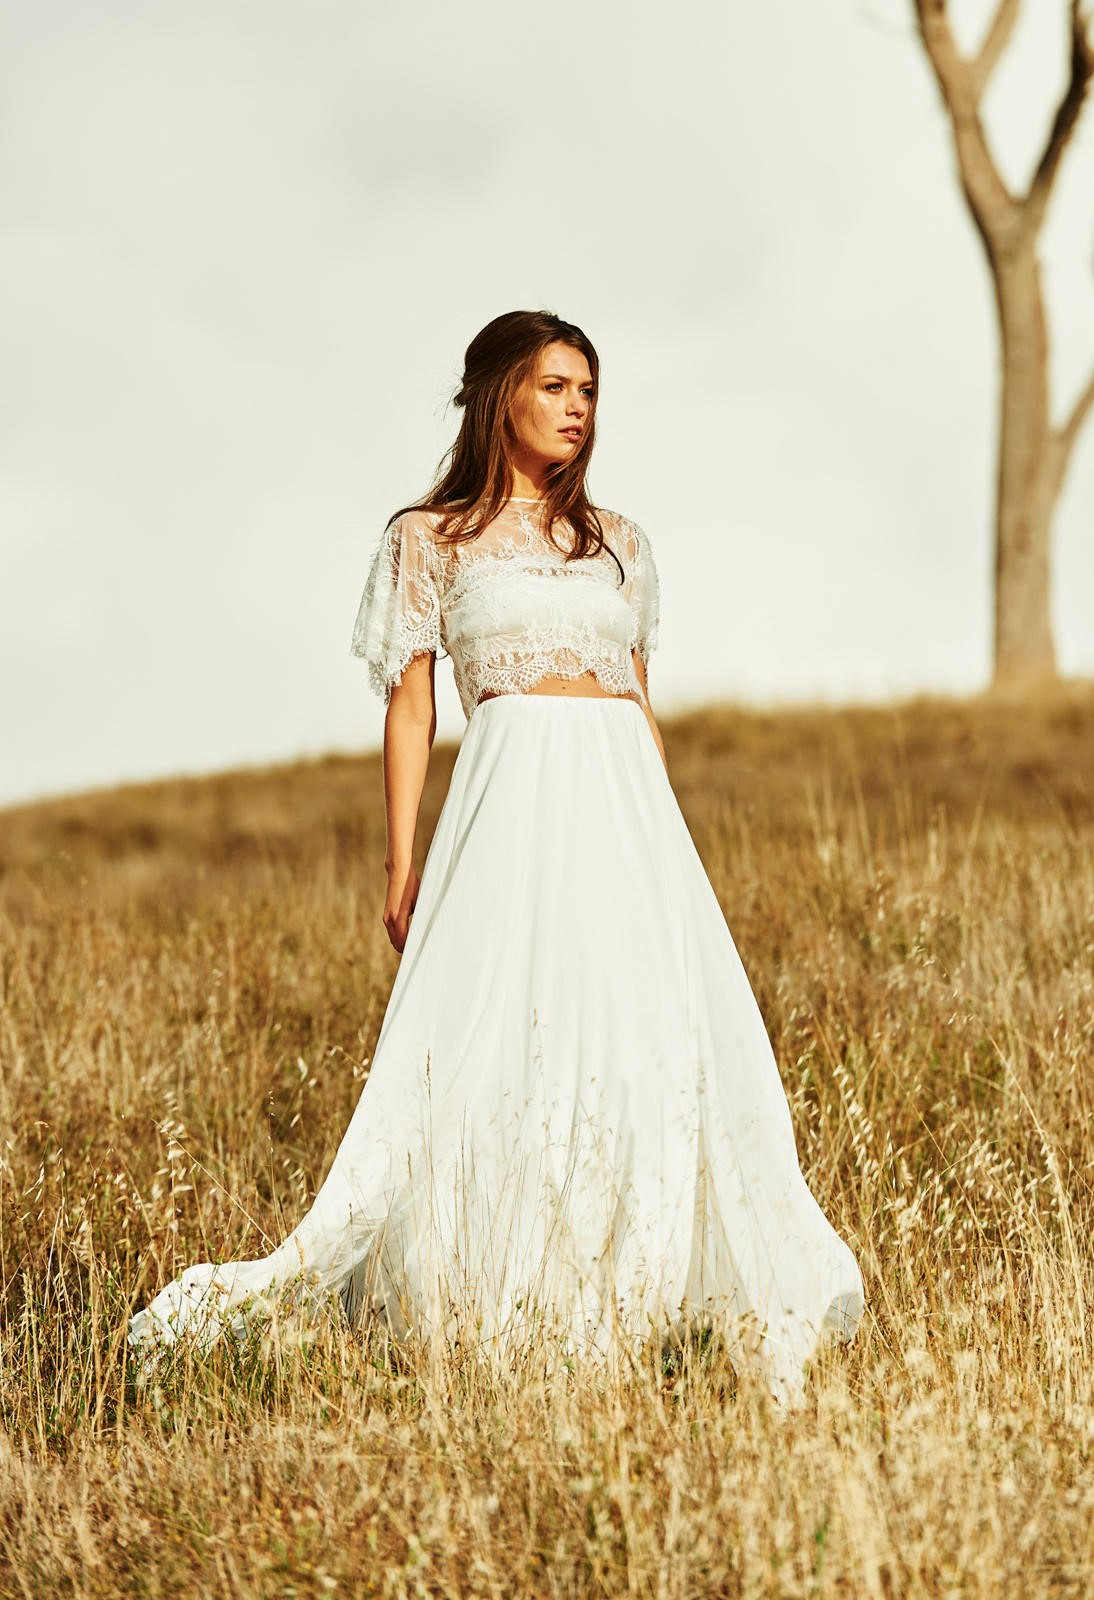 photo of a woman wearing a wedding dress outdoors